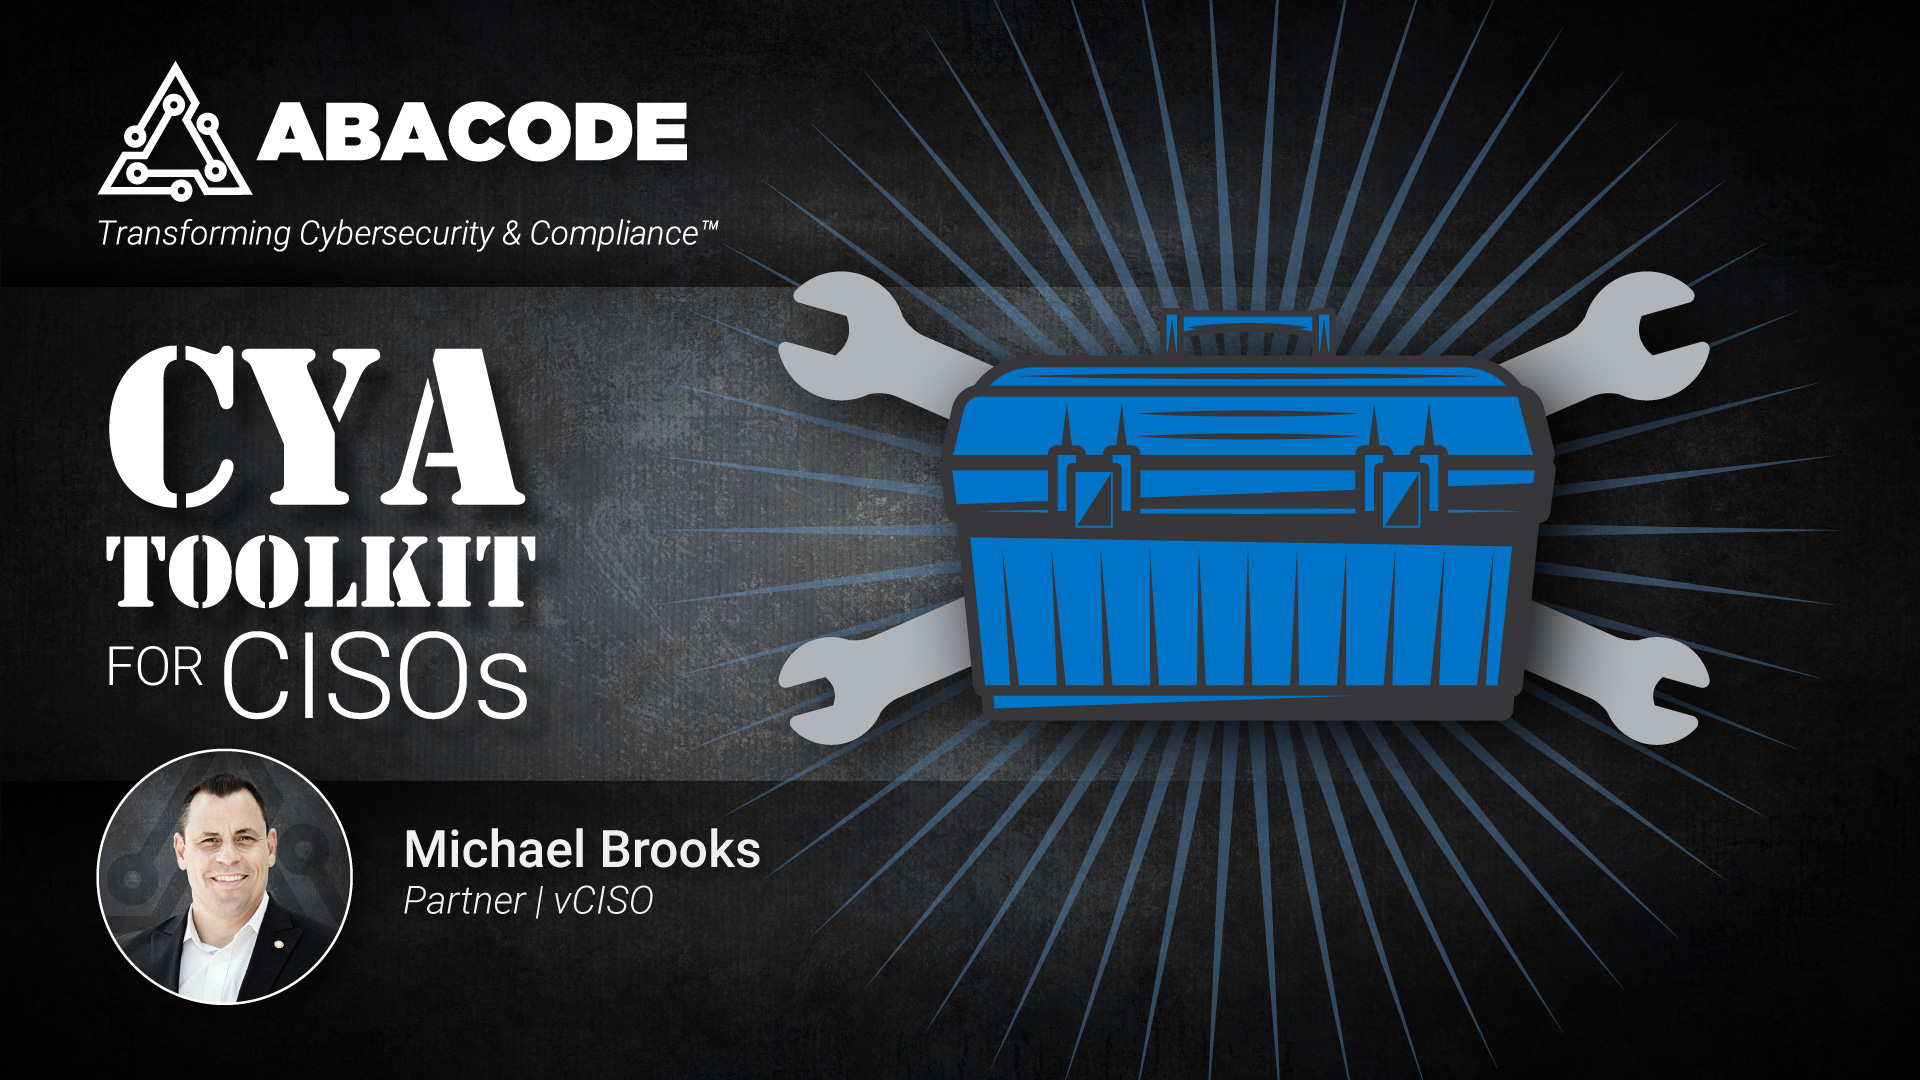 Abacode Events - CYA Toolkit for CISOs